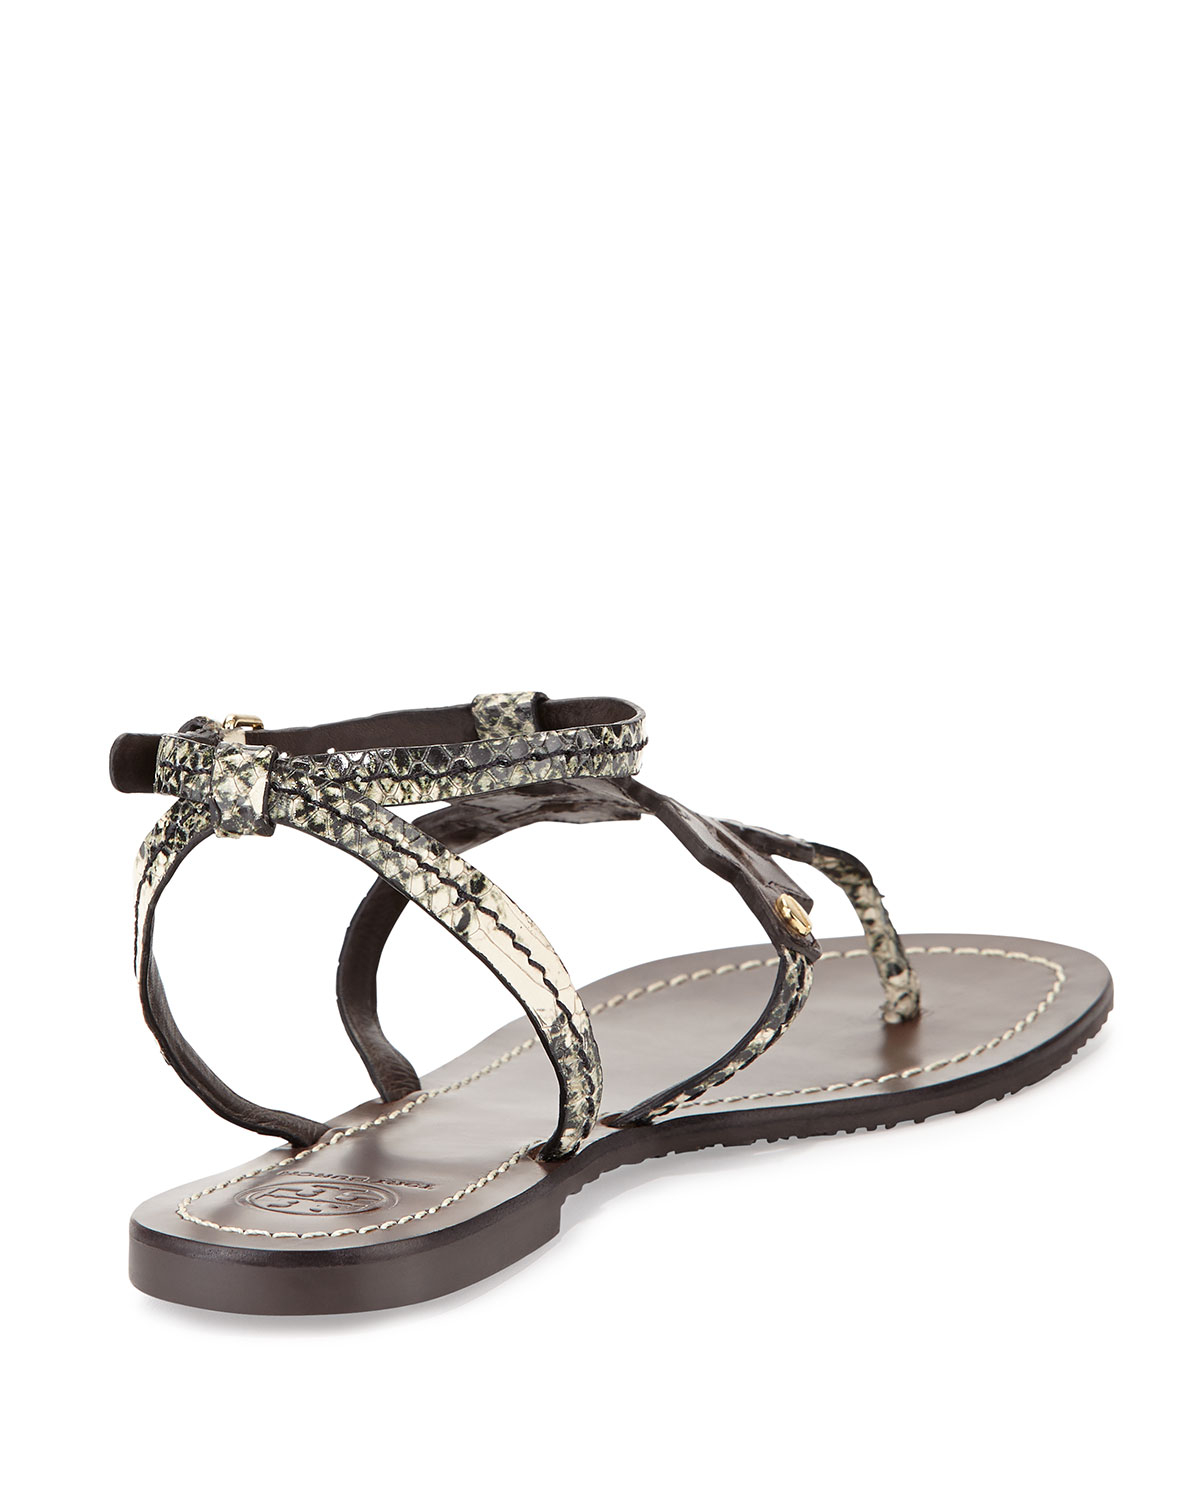 069390c703b5 Tory Burch Phoebe Snake-Embossed Leather Sandals in Black - Lyst